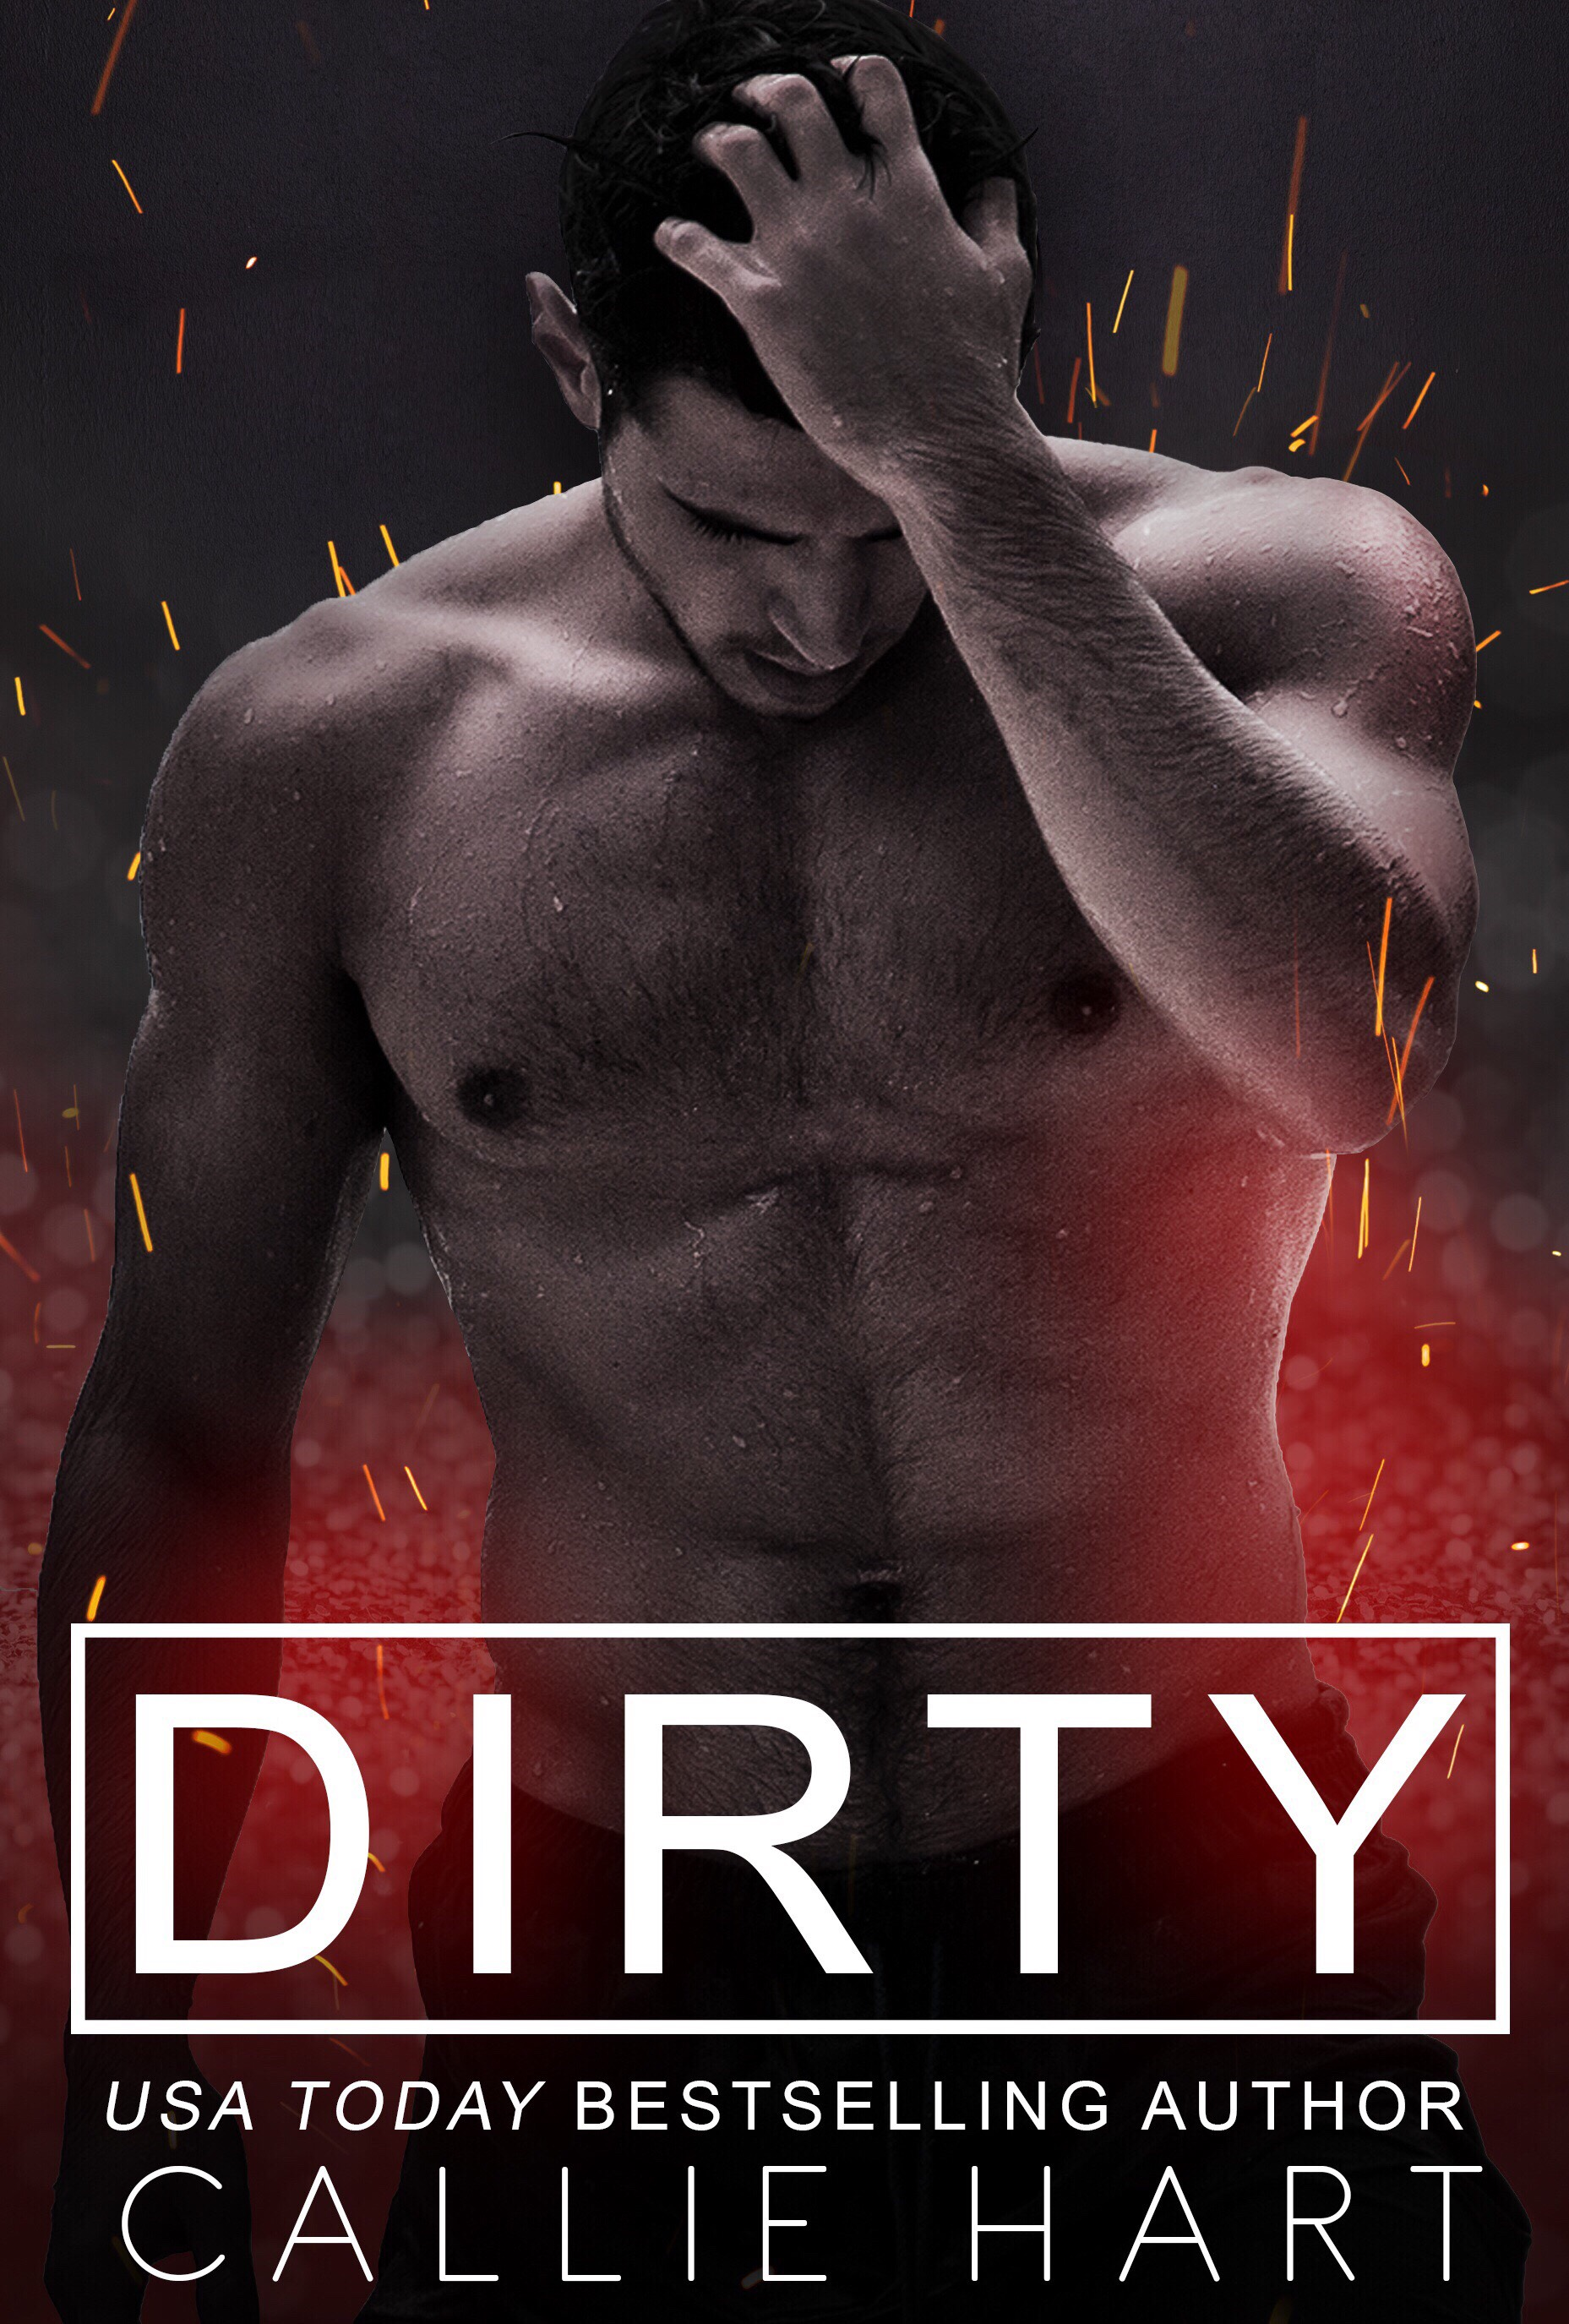 BOOK REVIEW: 'Dirty' by Callie Hart